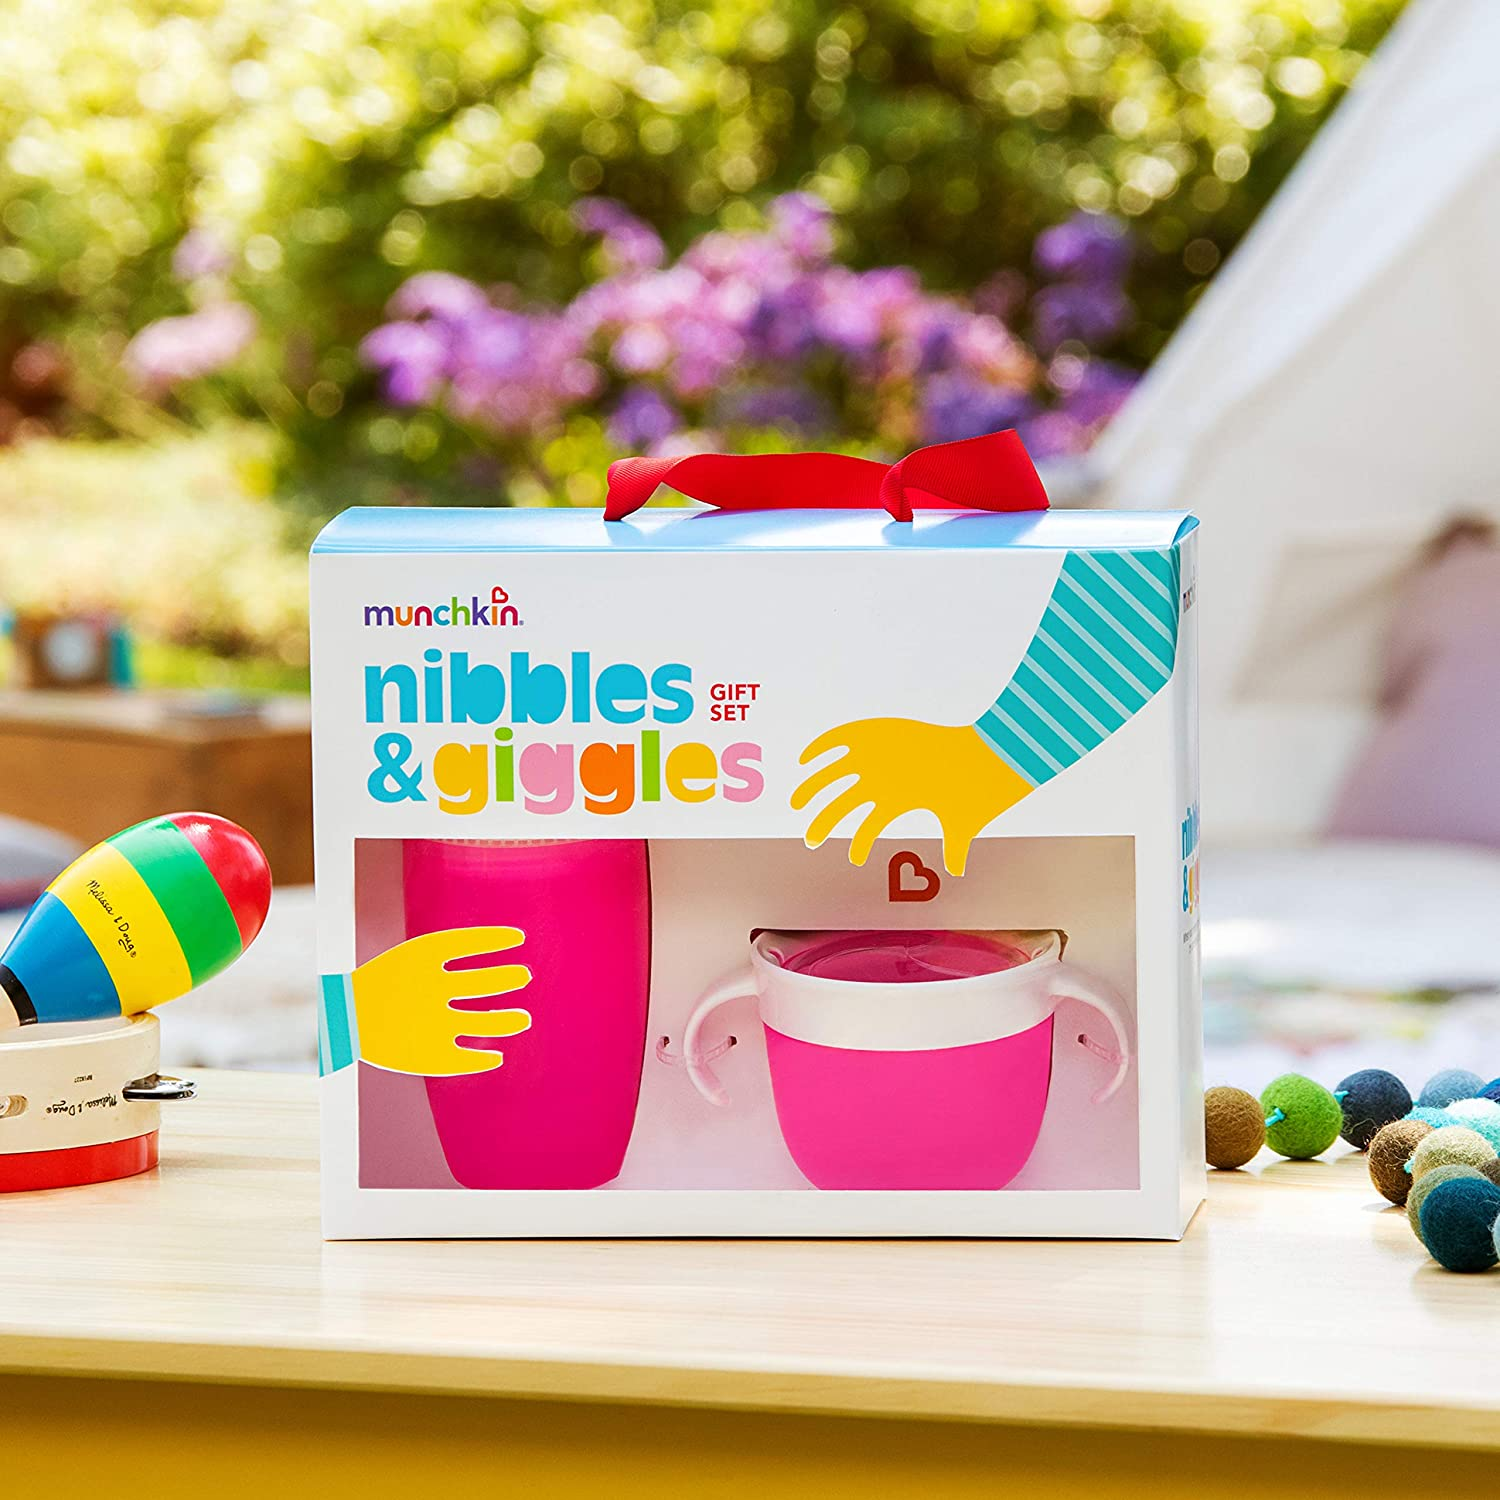 Munchkin Nibbles /& Giggles Toddler Gift Set Pink Includes 10oz Miracle 360 Cup and Snack Catcher